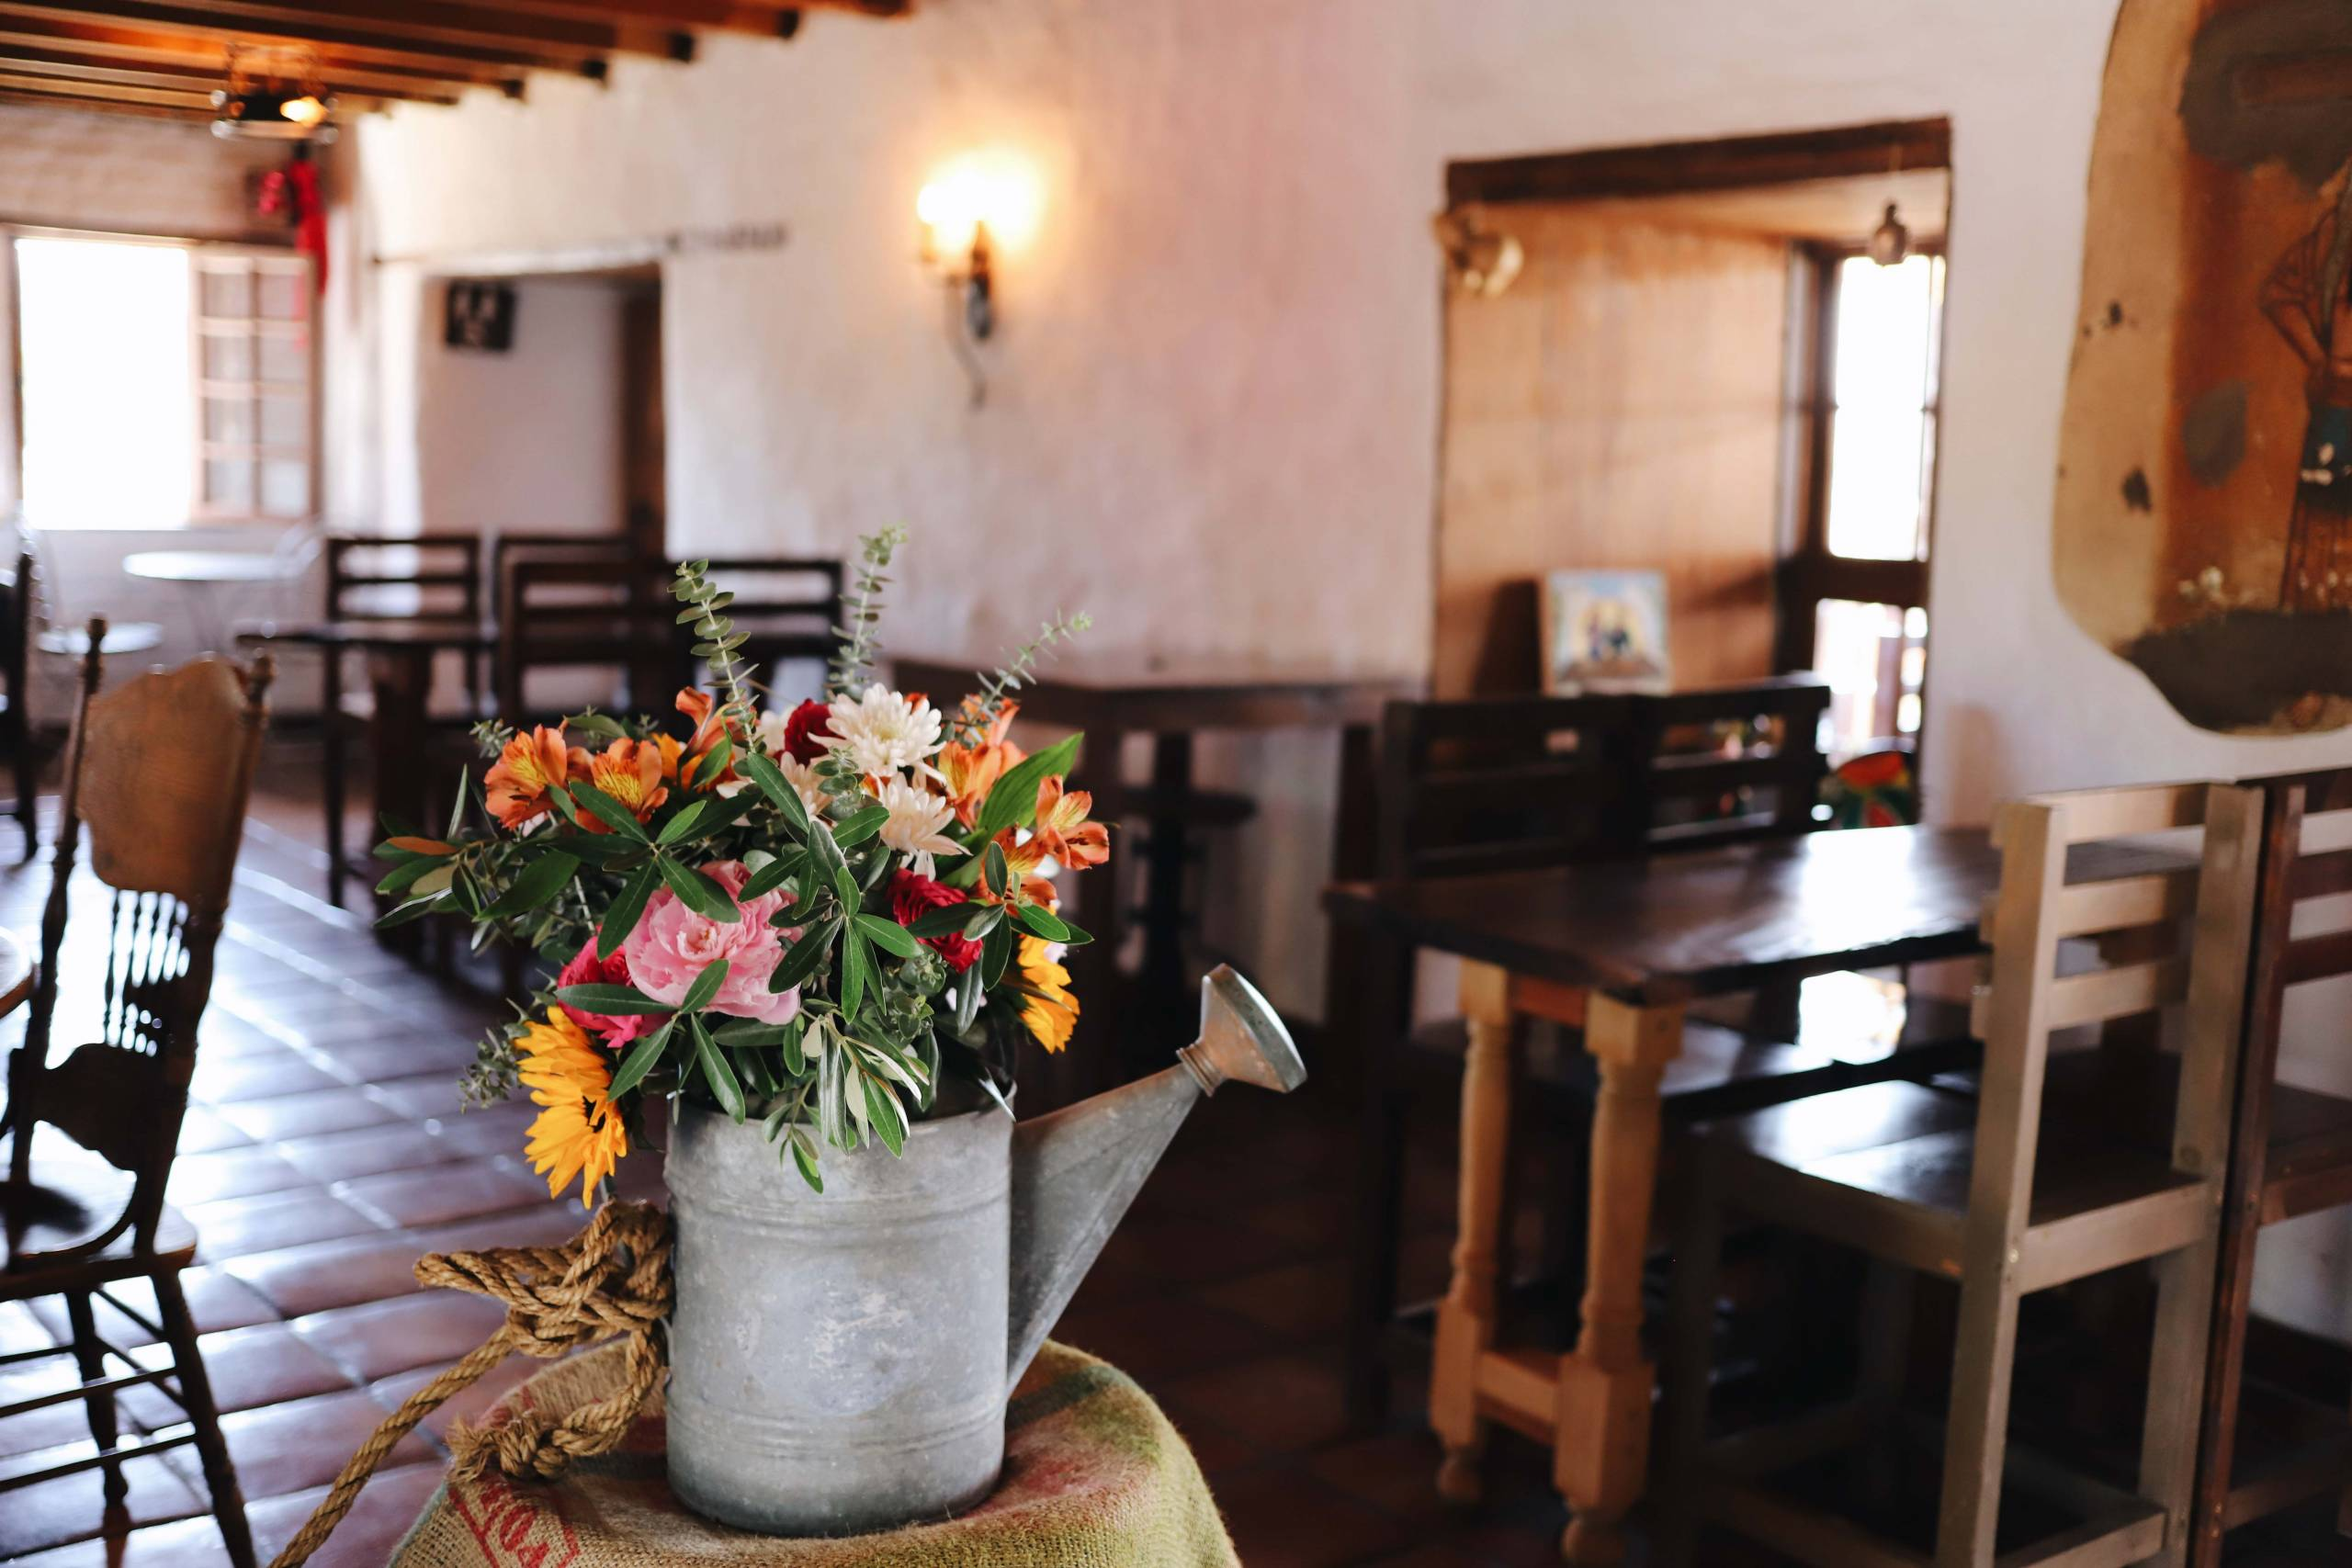 The dining room at La Cheve, with the old adobo walls and a bunch of flowers in a watering can.